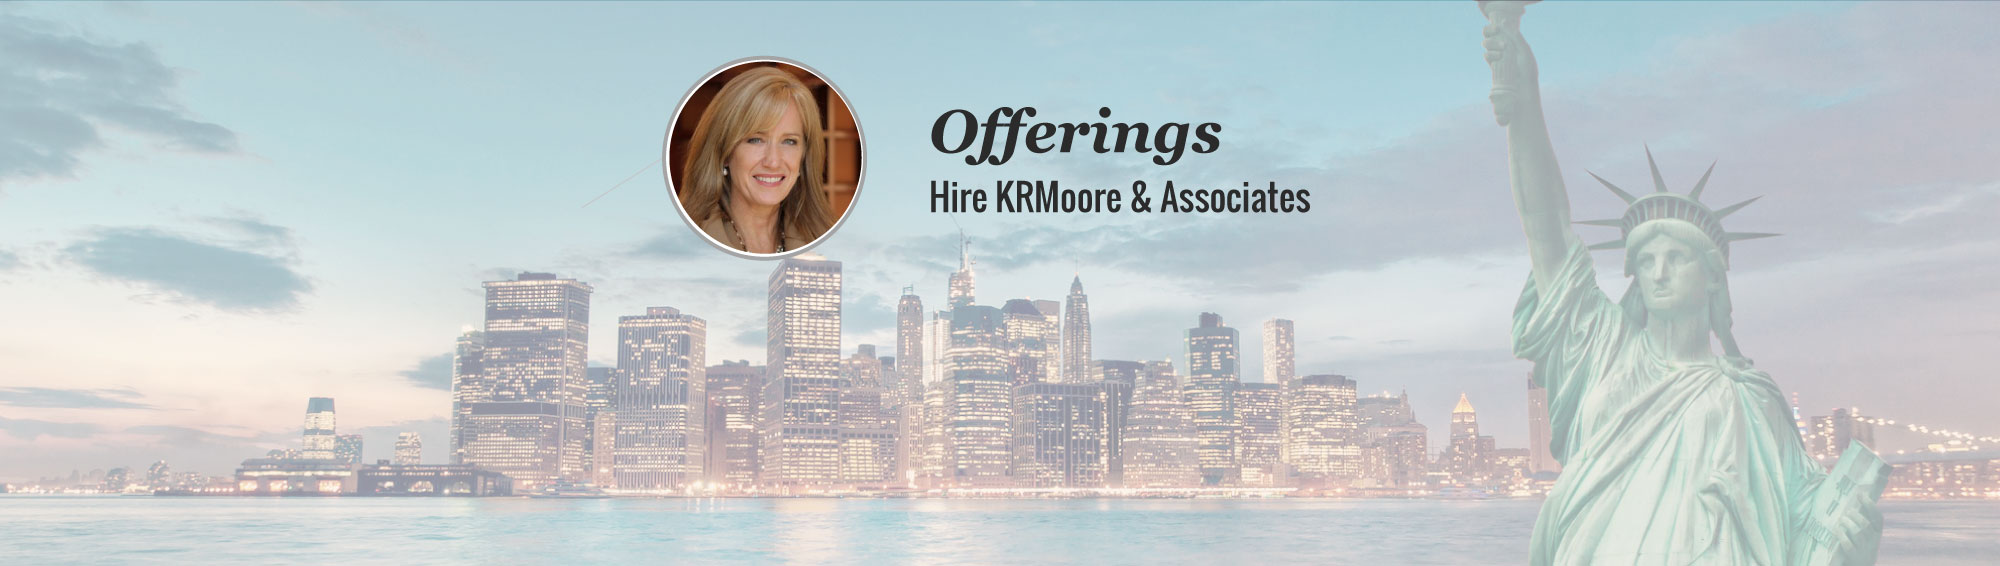 Offerings KRMoore & Associates, Houston based PCC Executive Coach